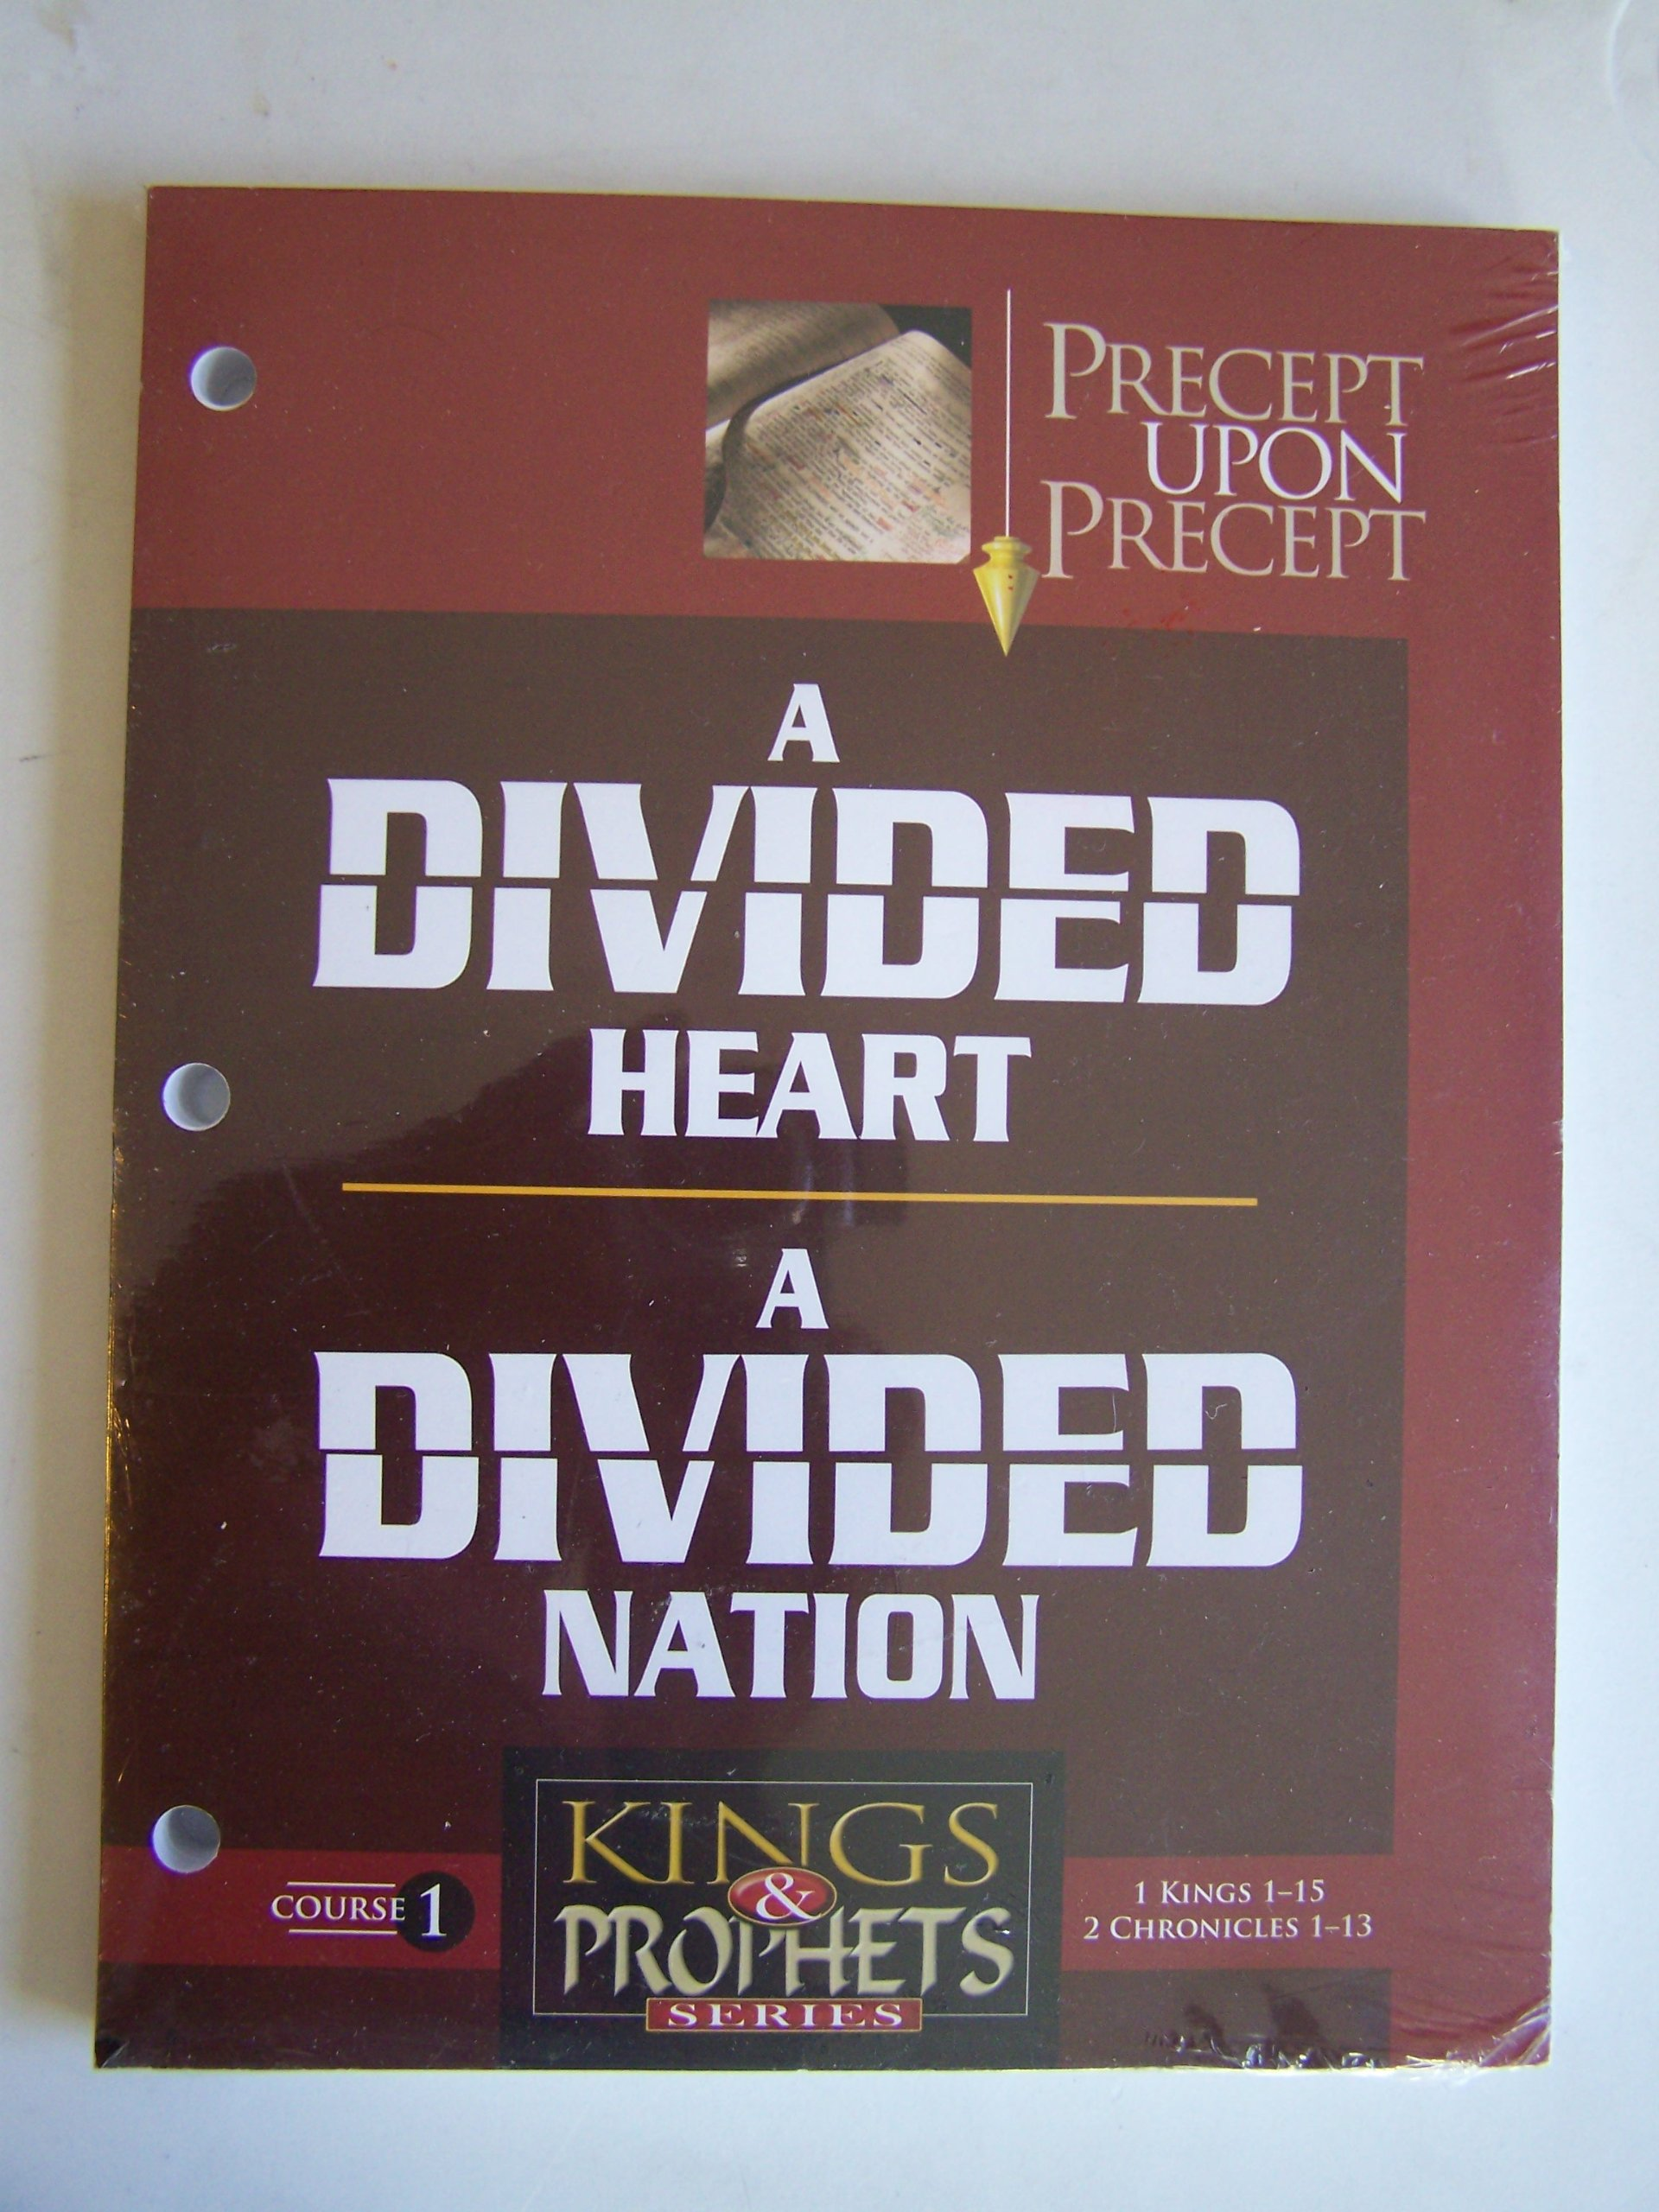 KINGS & PROPHETS - A Divided Heart / A Divided Nation [1 Kings 1-15 and 2 Chronicles 1-13] (Precept Upon Precept Bible Study) PDF